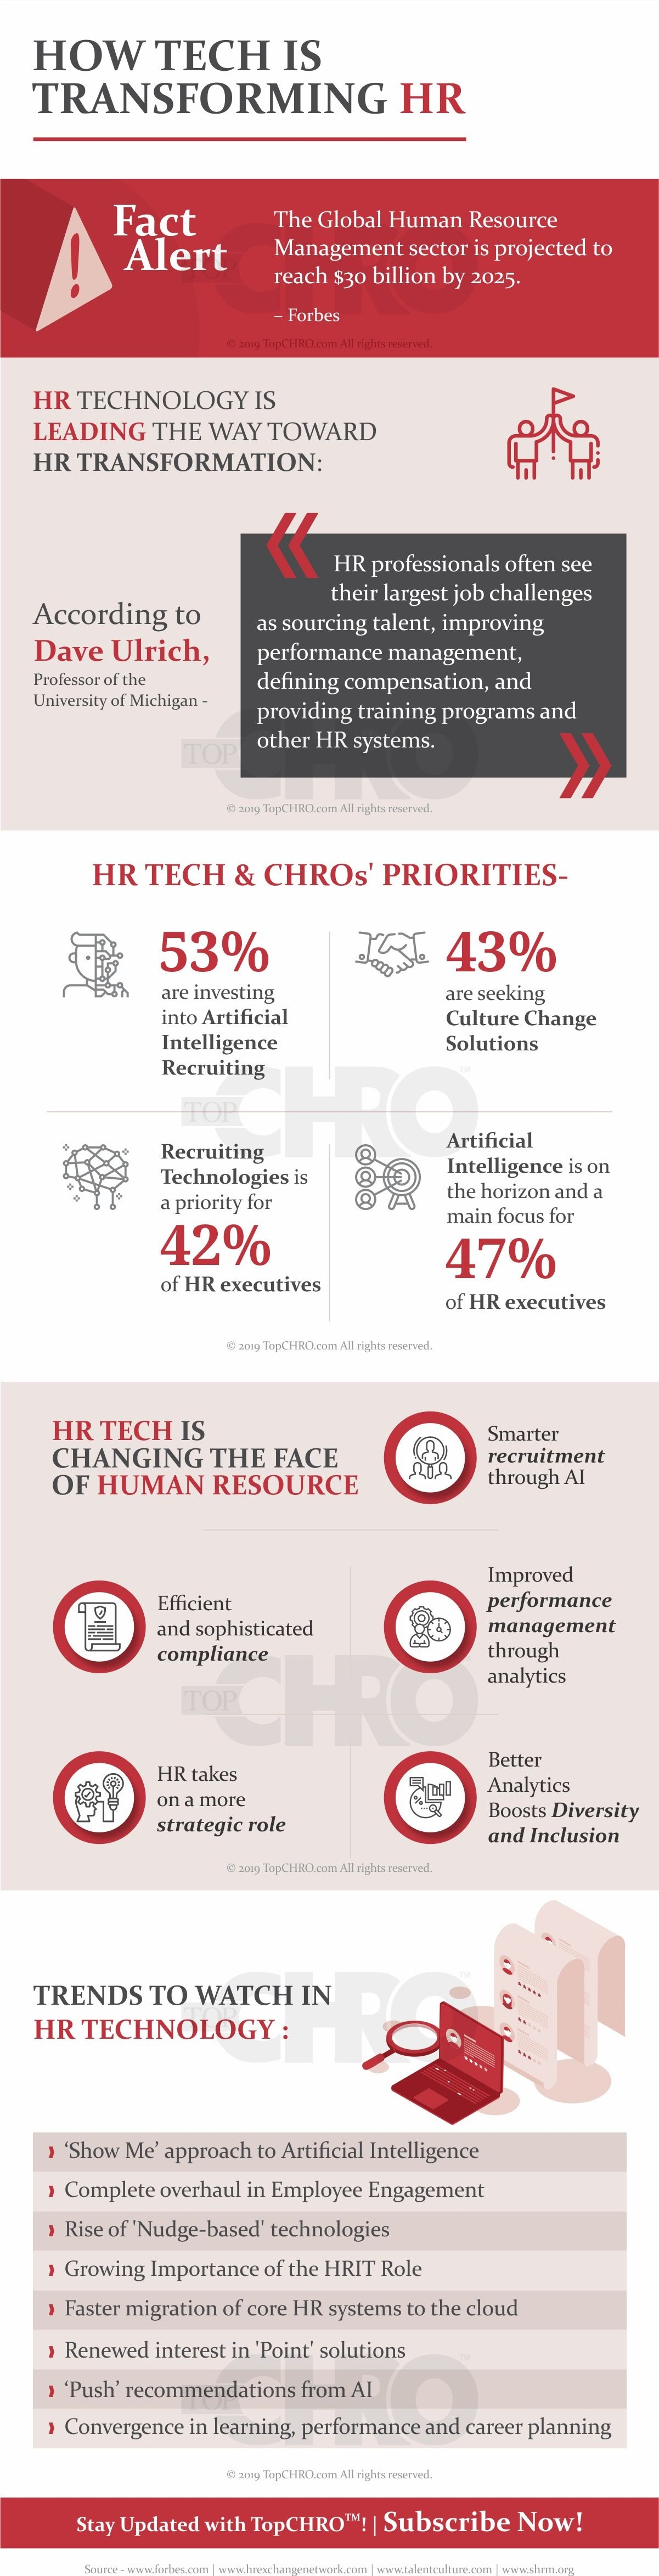 How Tech is Transforming HR #infographic